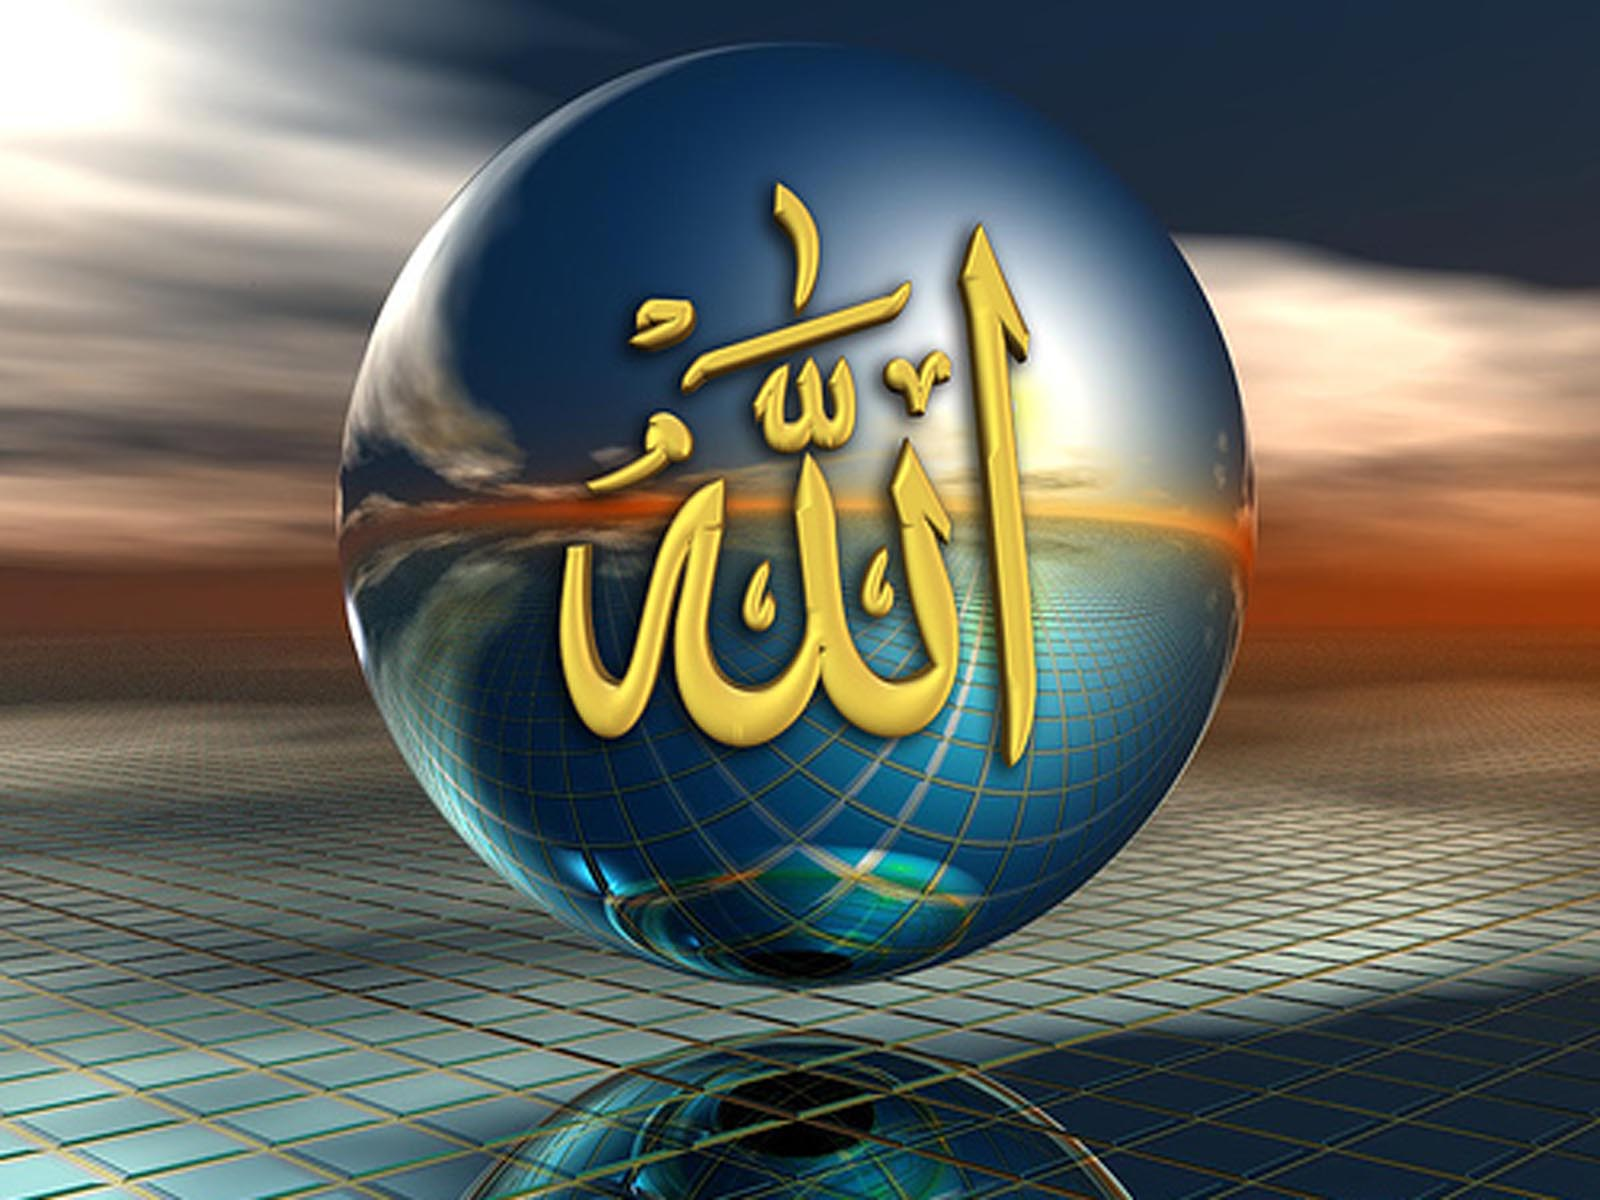 [50+] Allah Name Picture Wallpaper on WallpaperSafari